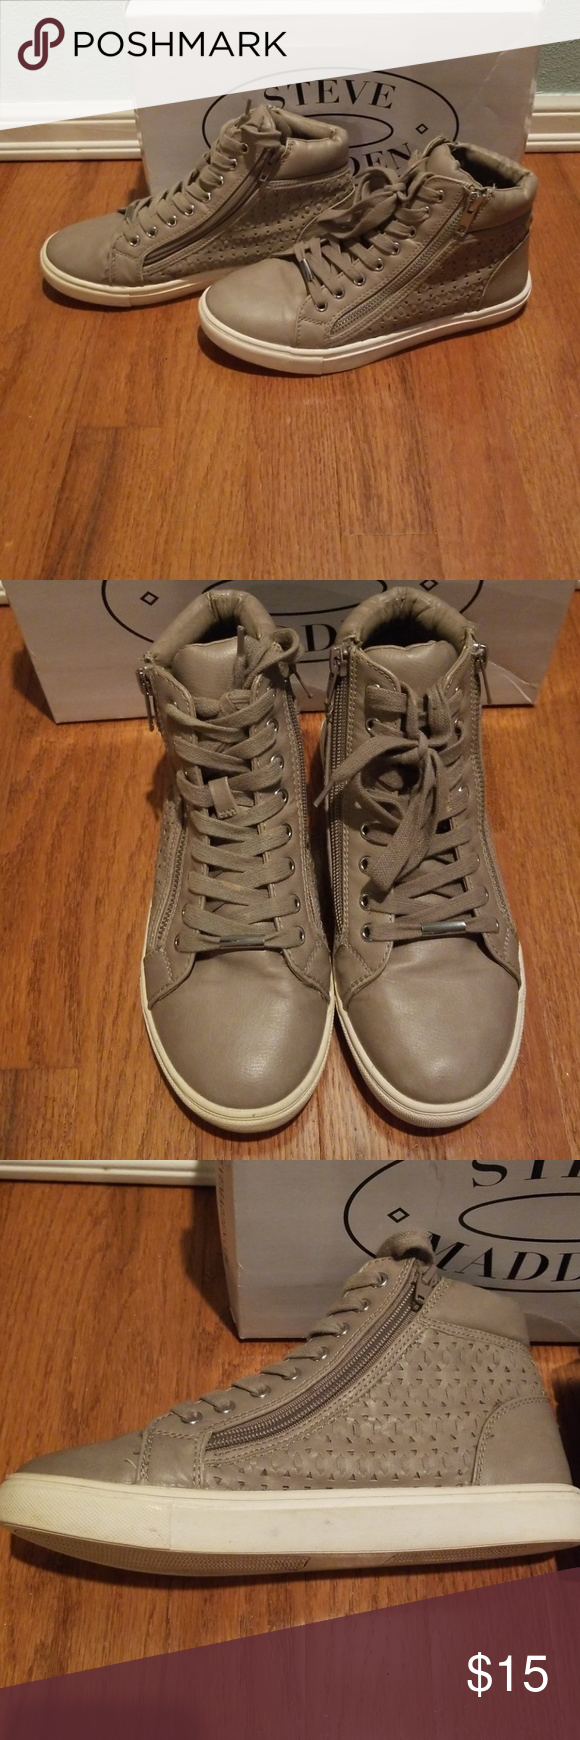 1c0a586bfdf Steve Madden Eiris Sneakers Grey high top sneakers with zipper design on  both sides. All flaws shown in pics. A little discoloration on the strings  and ...